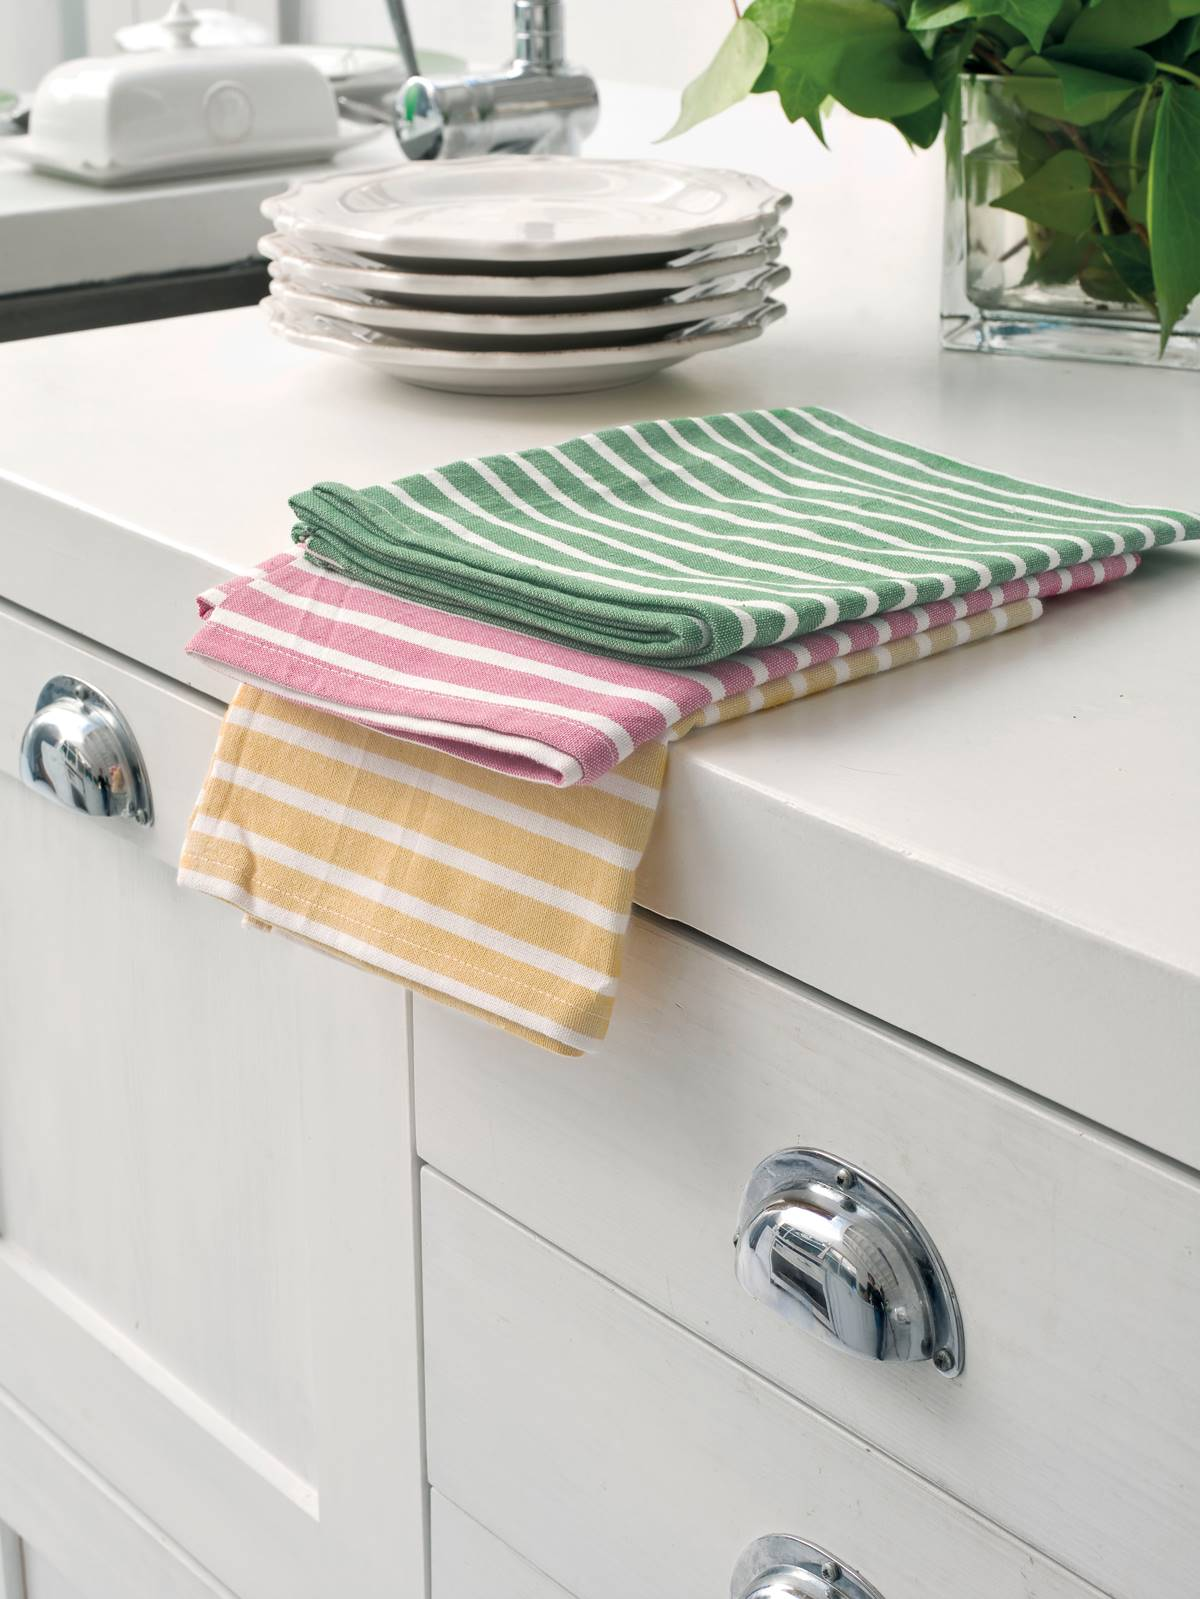 50 cleaning tricks for the kitchen tidying up the rags 00312781. 48. And how to store the rags so that they take up little space?